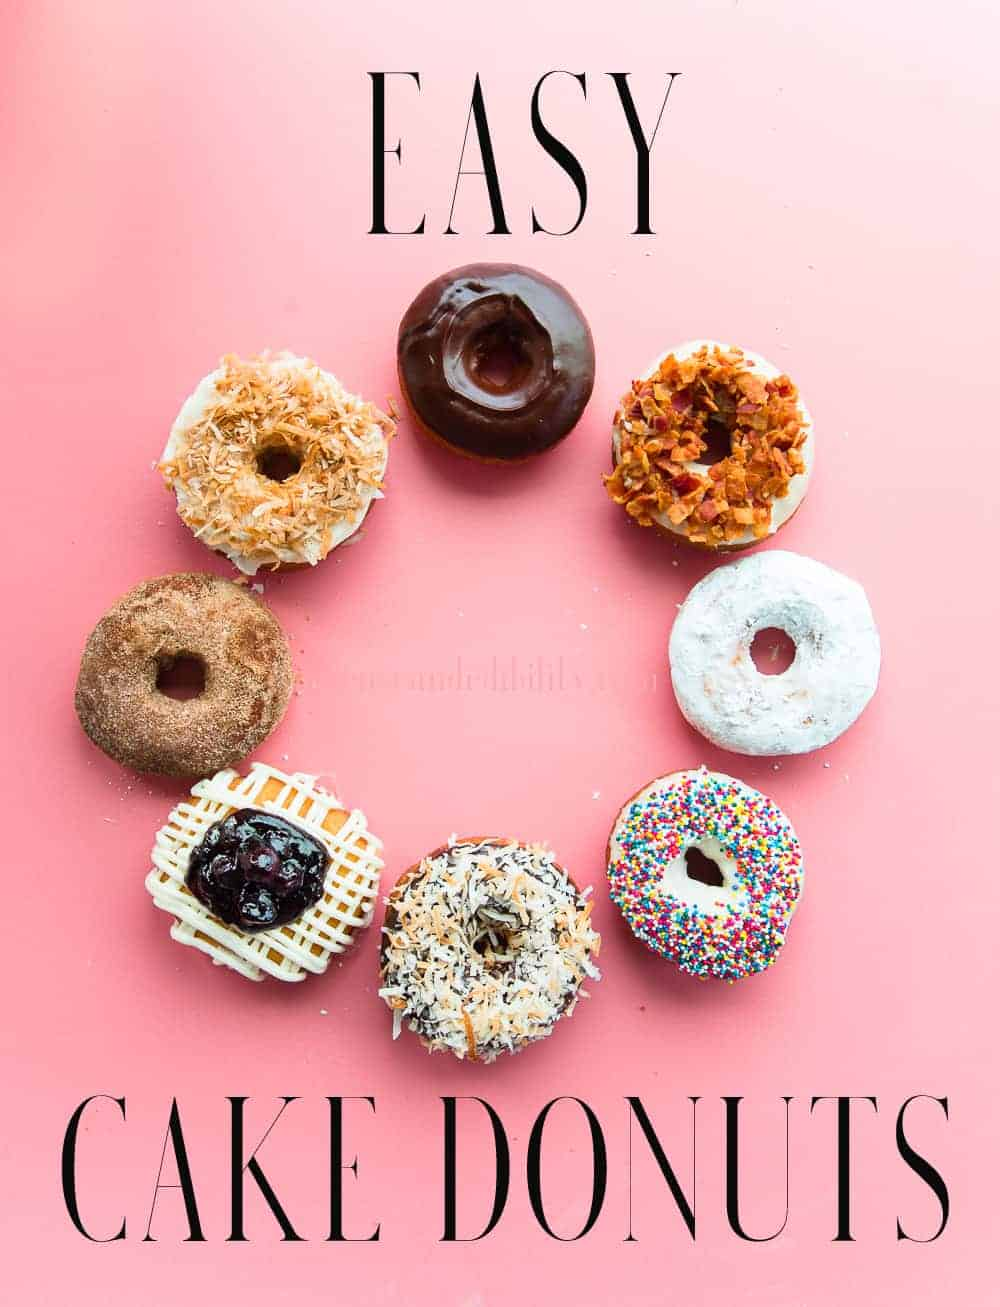 It's time to make the donuts! At home...in fuzzy slippers. See how Easy it is to make the best Cake Donuts at home. Load them with your favorite toppings and create new combinations. Freezer- and make-ahead friendly. #cakedonuts #frieddough #doughnuts #cakedoughnuts #donuttoppings #donutbar #breakfast #brunch #dessert #donutrecipe #donutsfromscratch #homemadedonuts  via @ediblesense